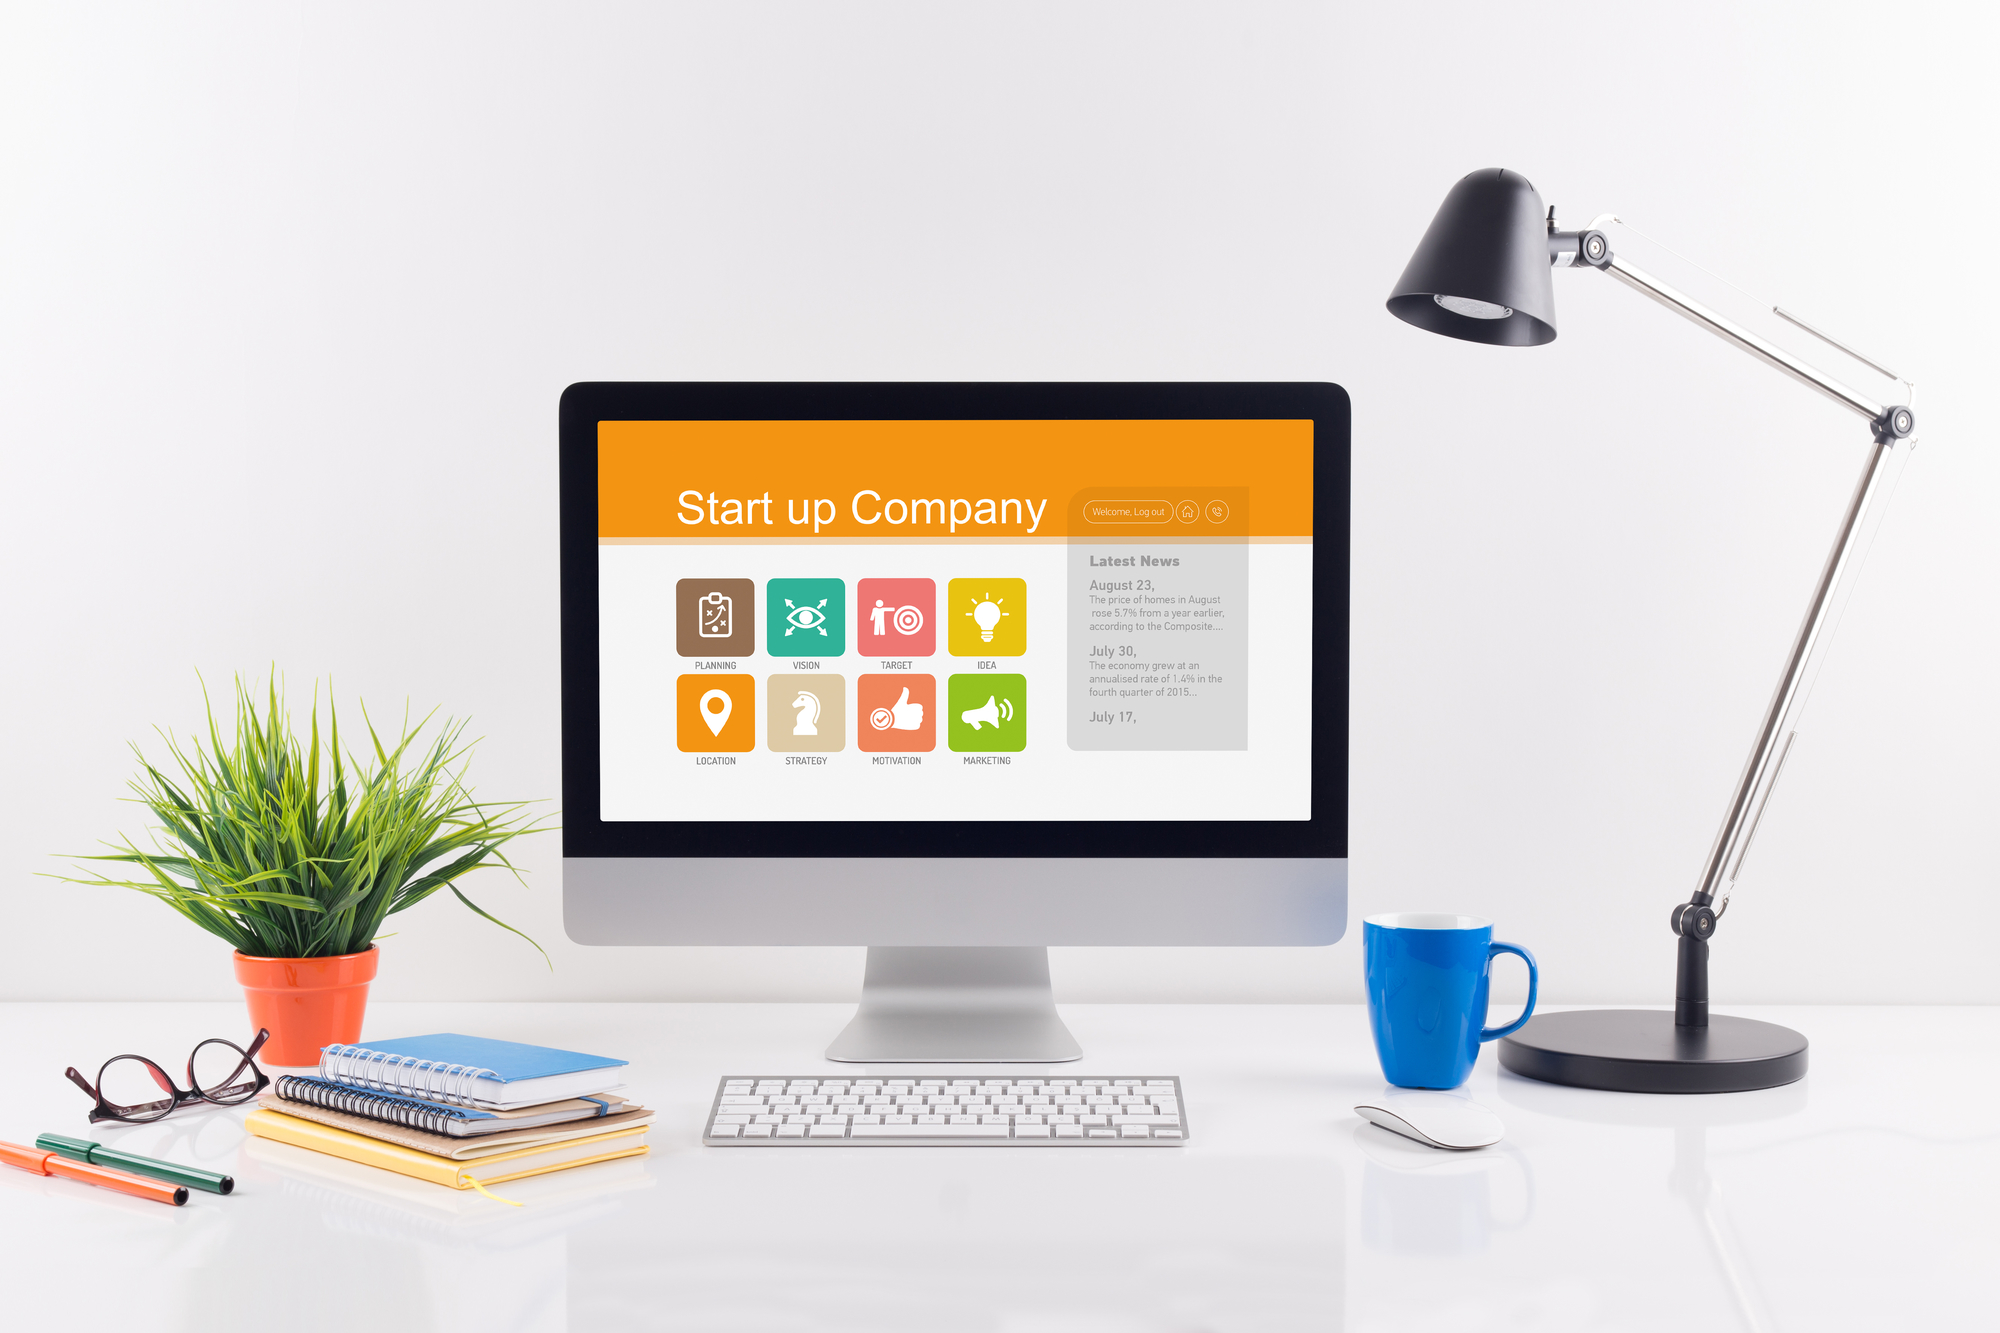 Start up Company screen on the workplace